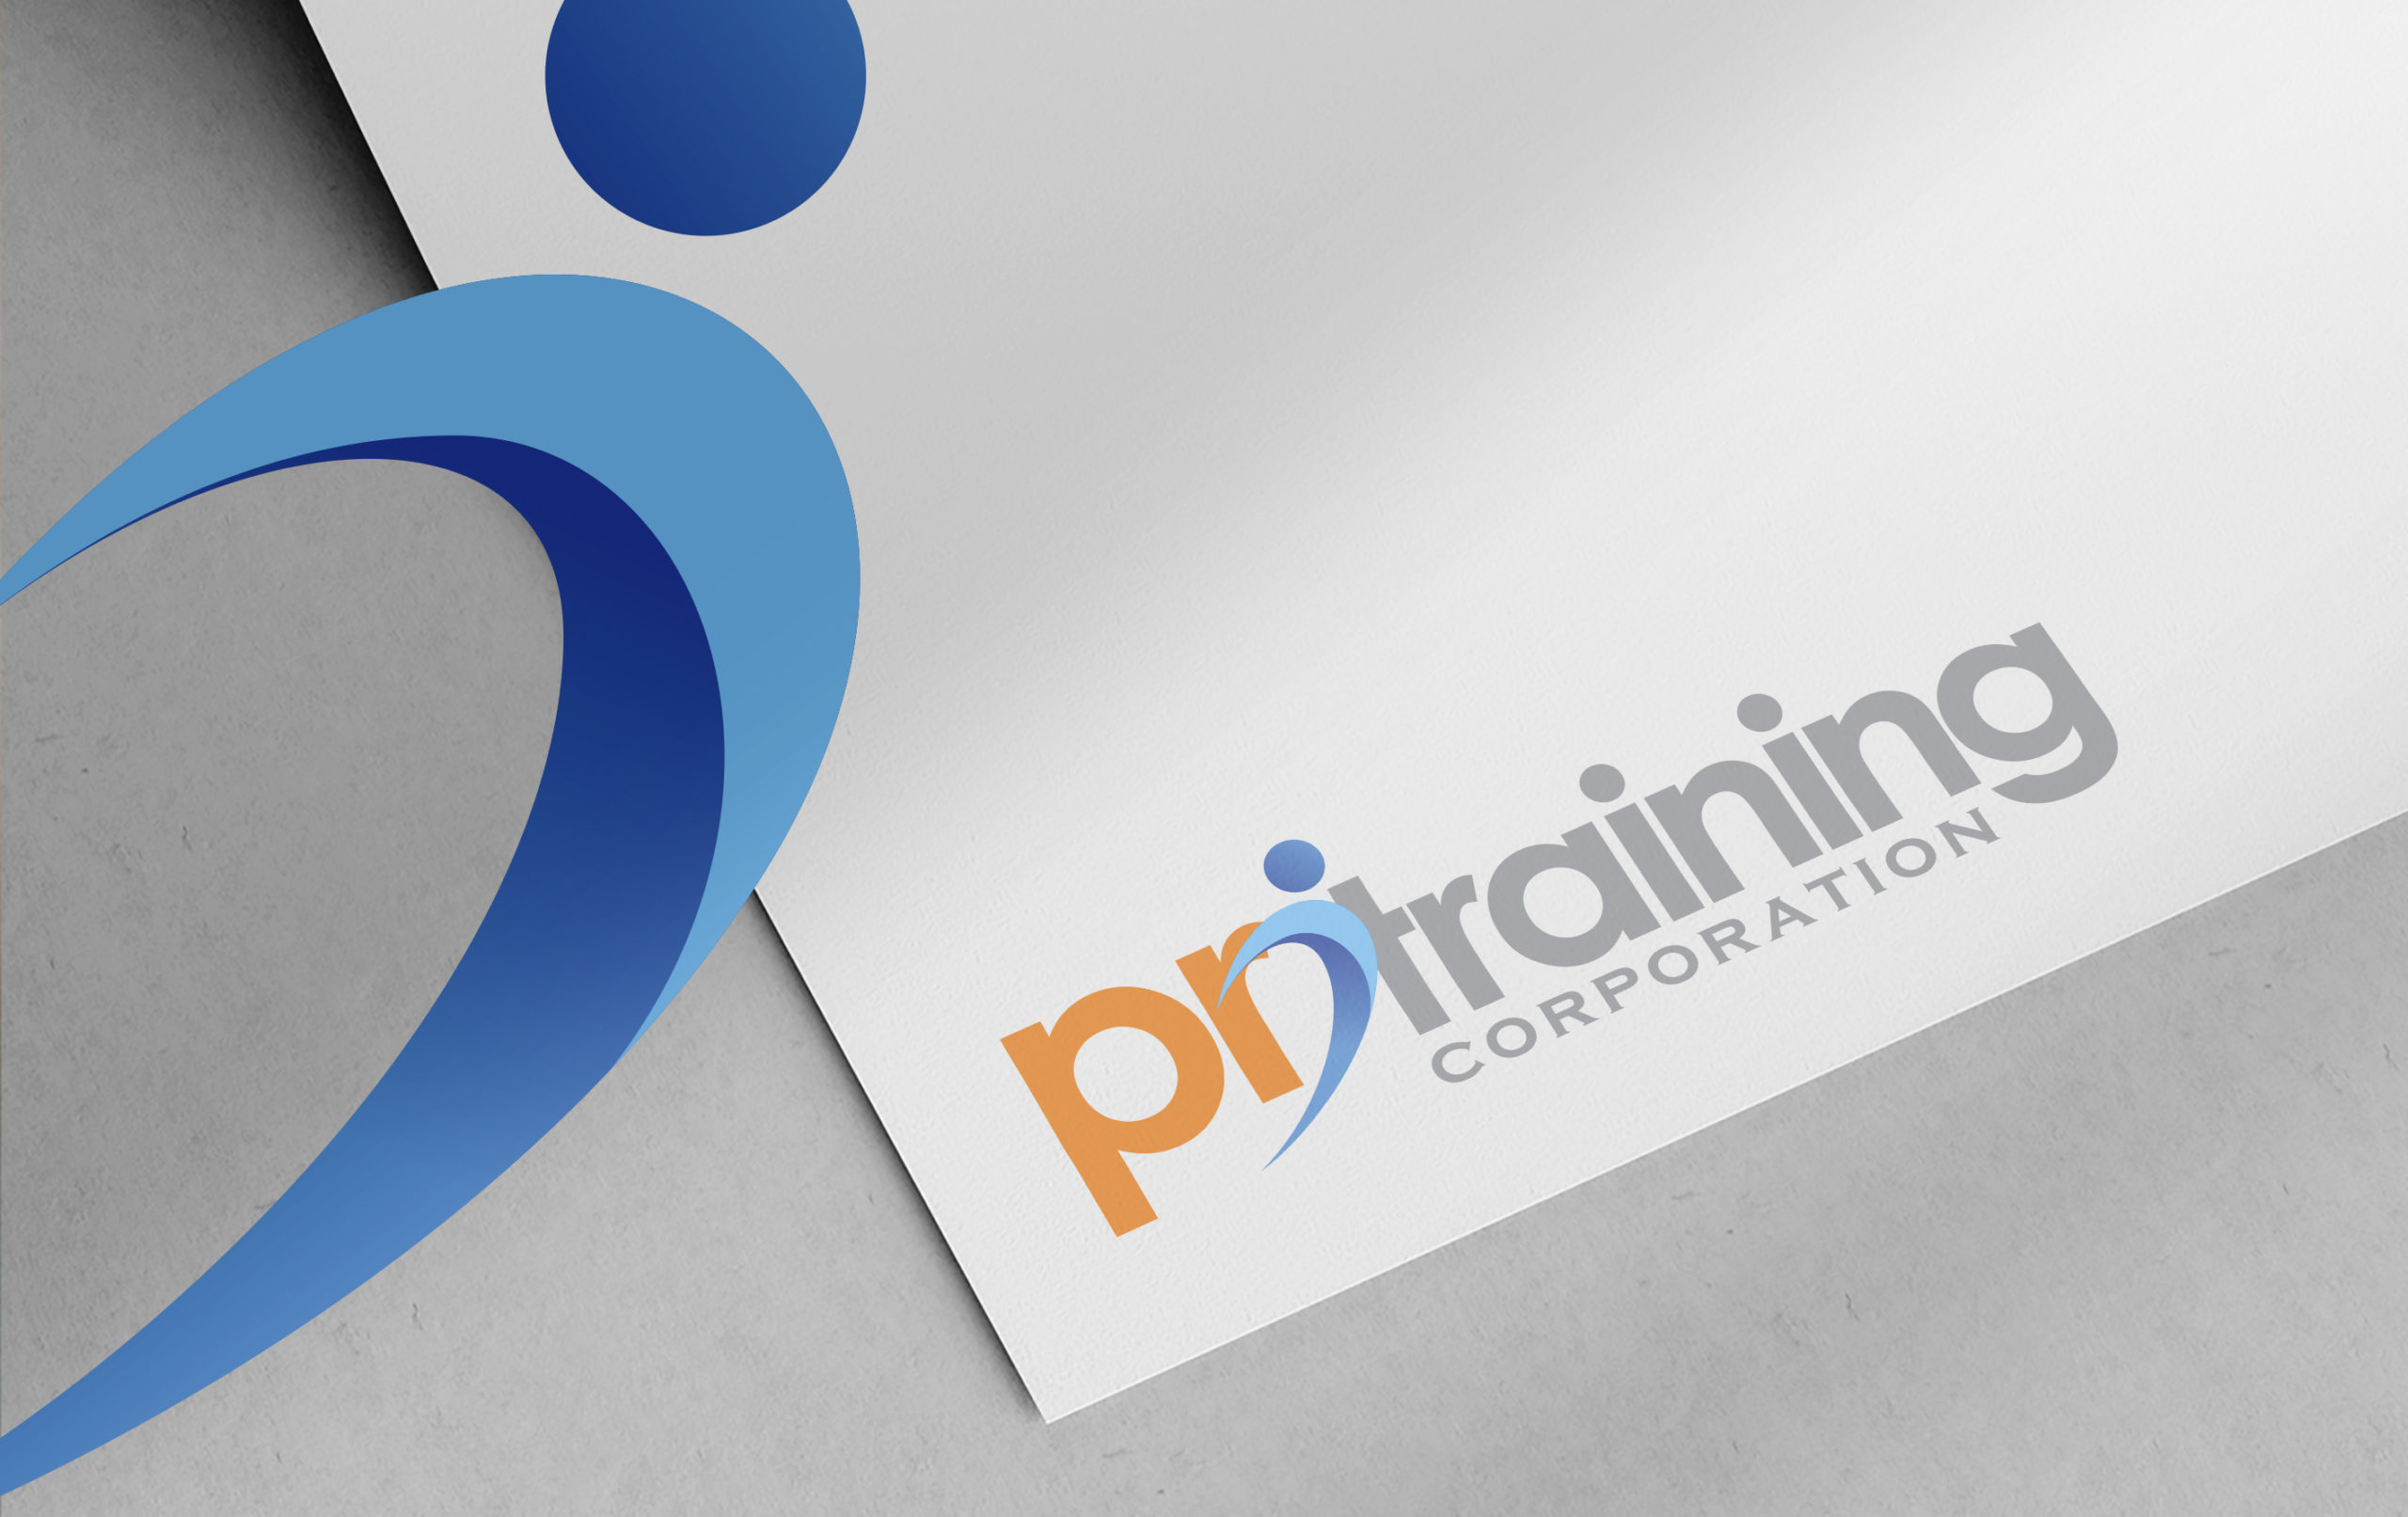 port_prTraining_1